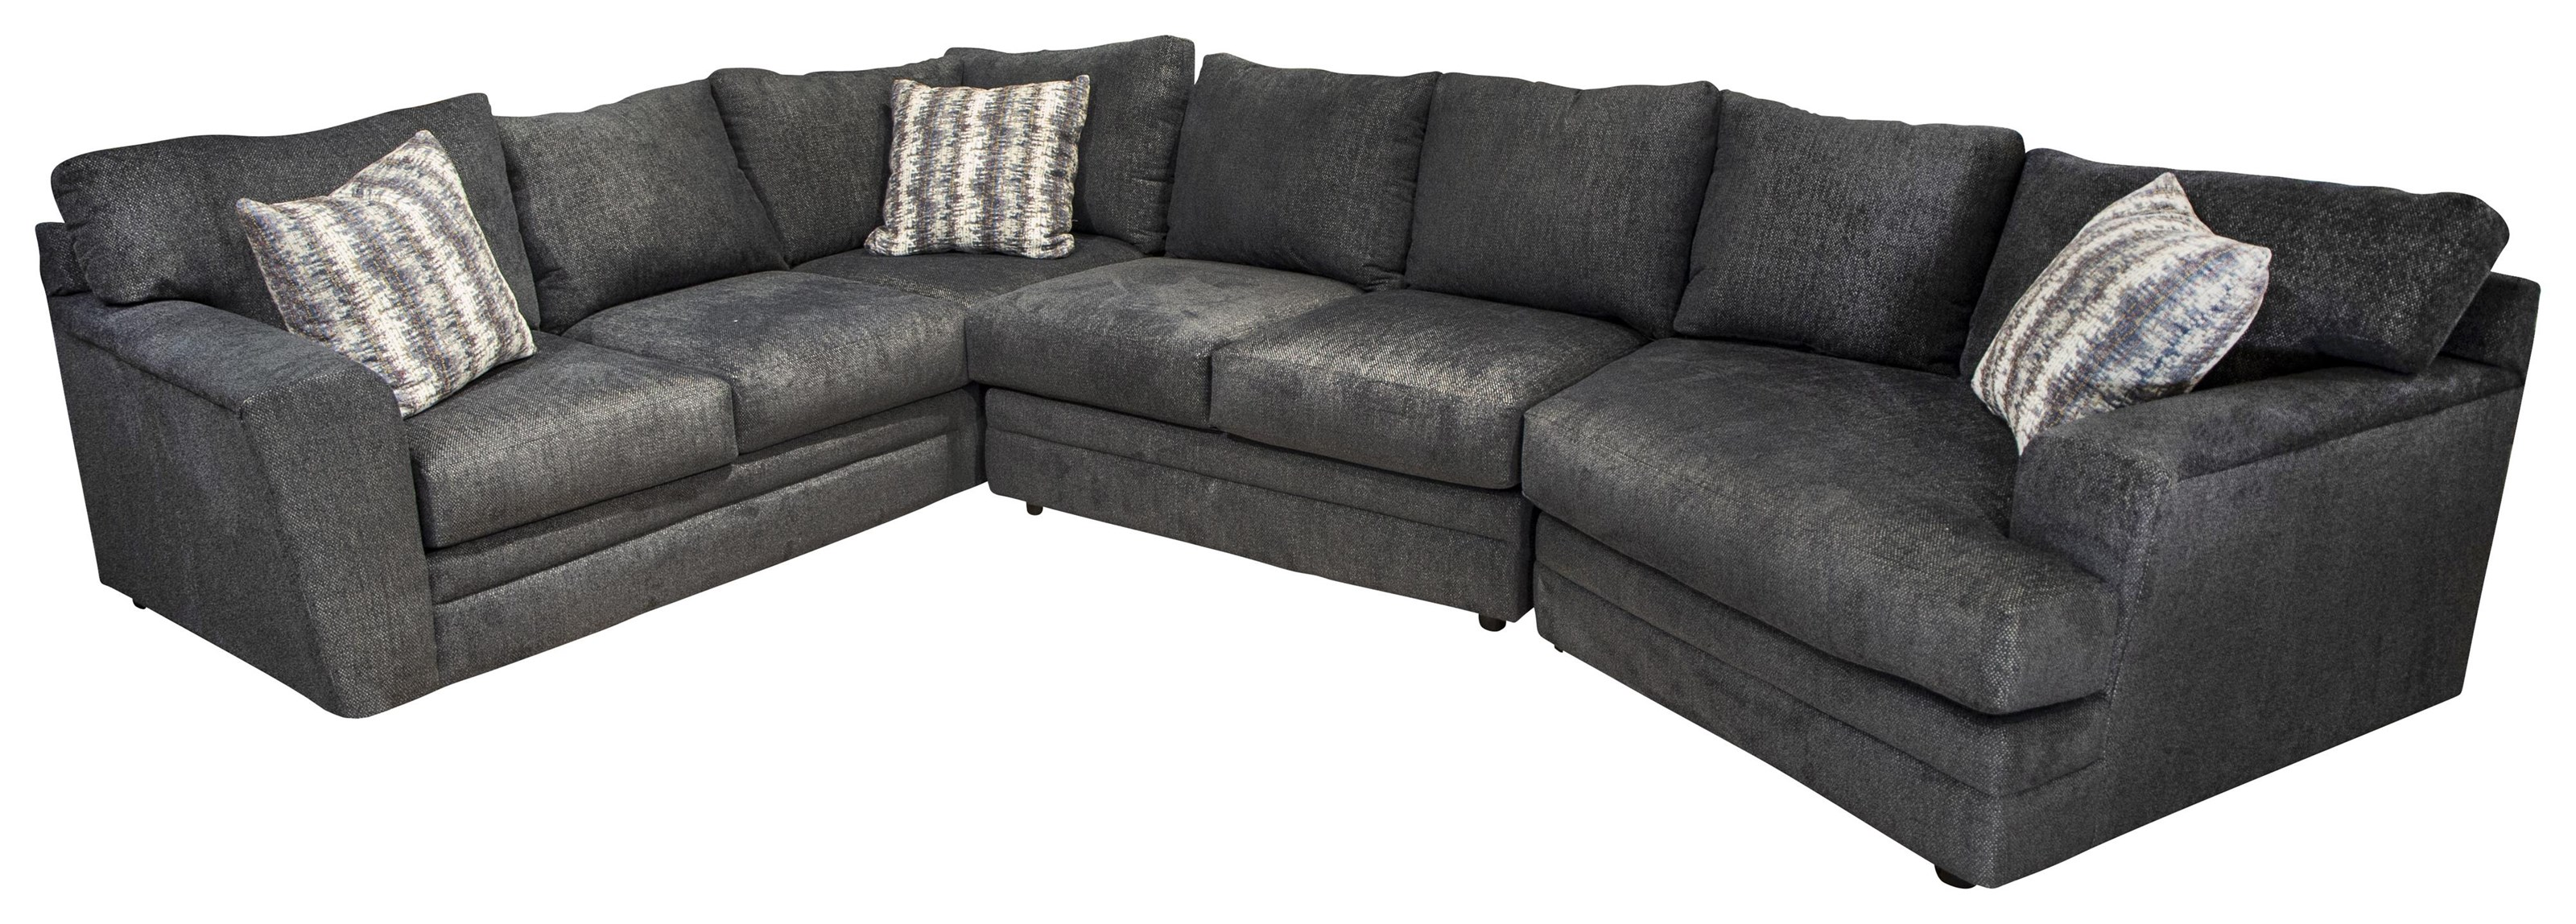 Rayner Rayner Sectional Sofa by Klaussner at Morris Home